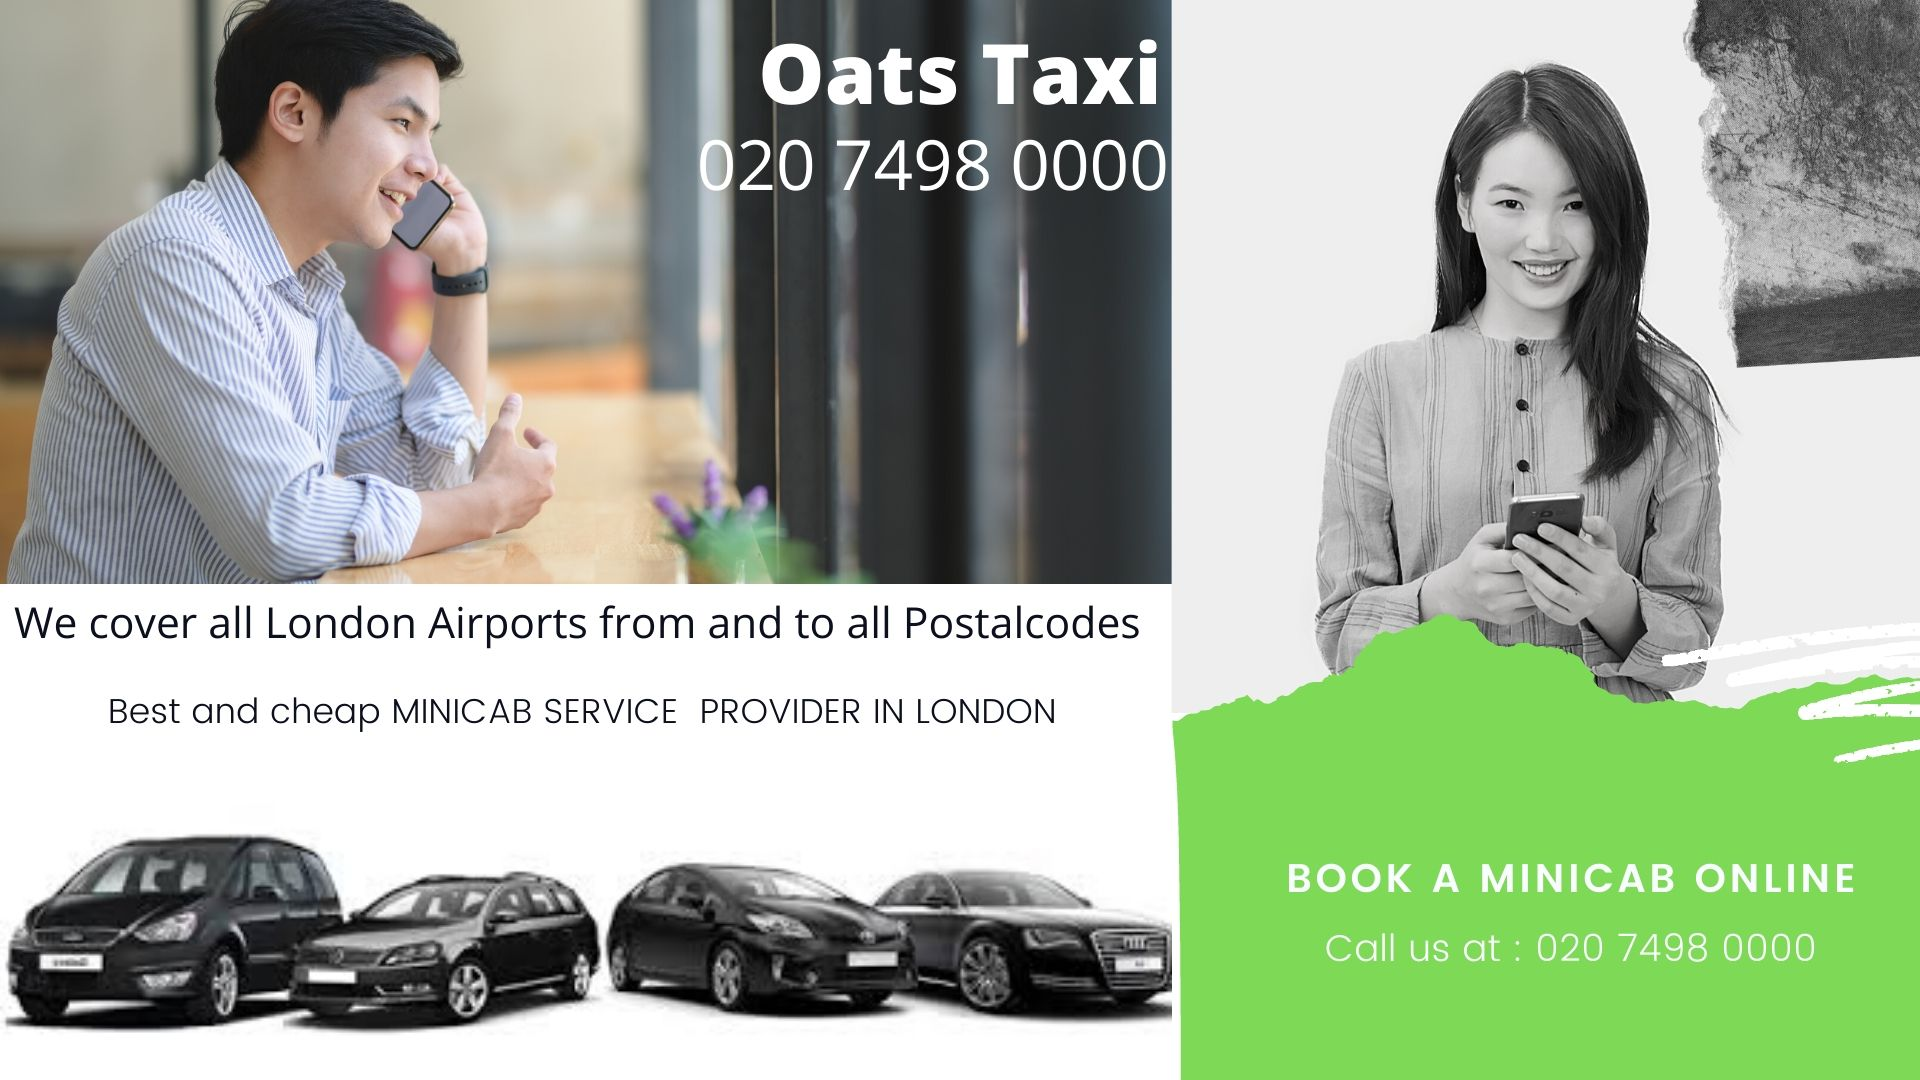 Battersea Taxi - Taxi From Battersea to London Gatwick Airport